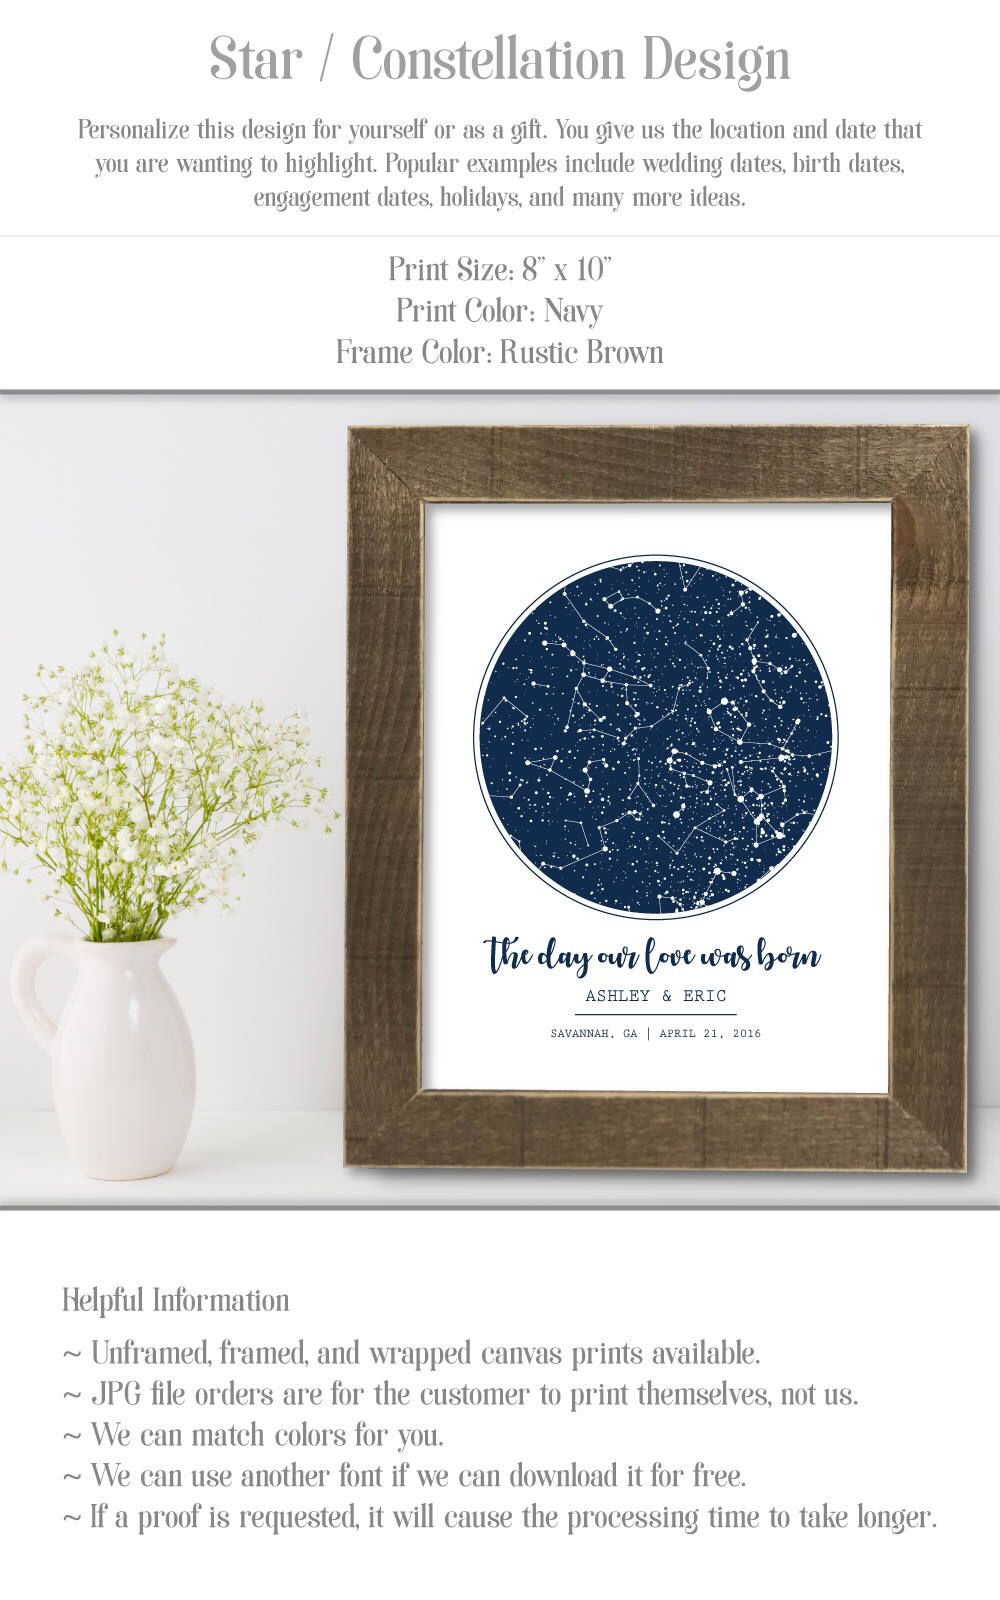 Personalised star map print custom poster framed chart night sky personalised star map print custom poster framed chart night sky wedding gift anniversary present for her women christmas idea wedding him by ourlovewasborn negle Images